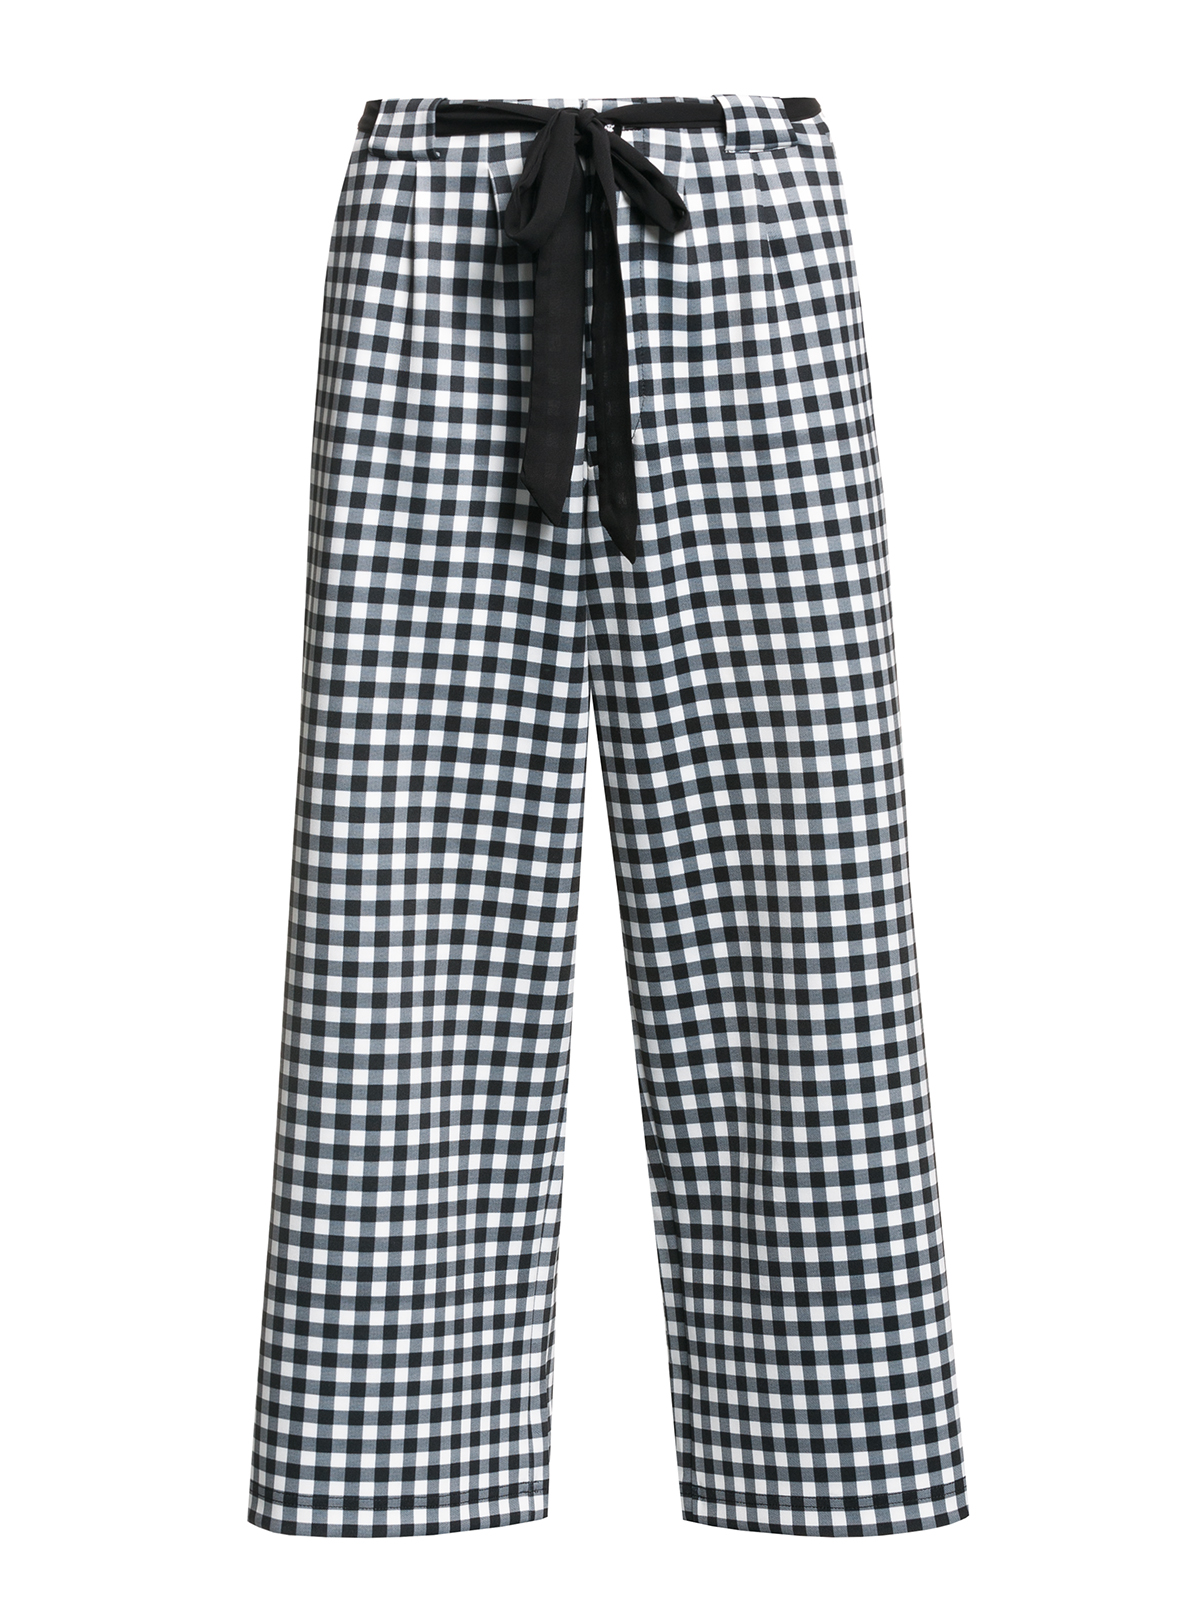 Hosen - Pussy Deluxe Plaid Cherries Damen Culotte – Größe XL  - Onlineshop NAPO Shop